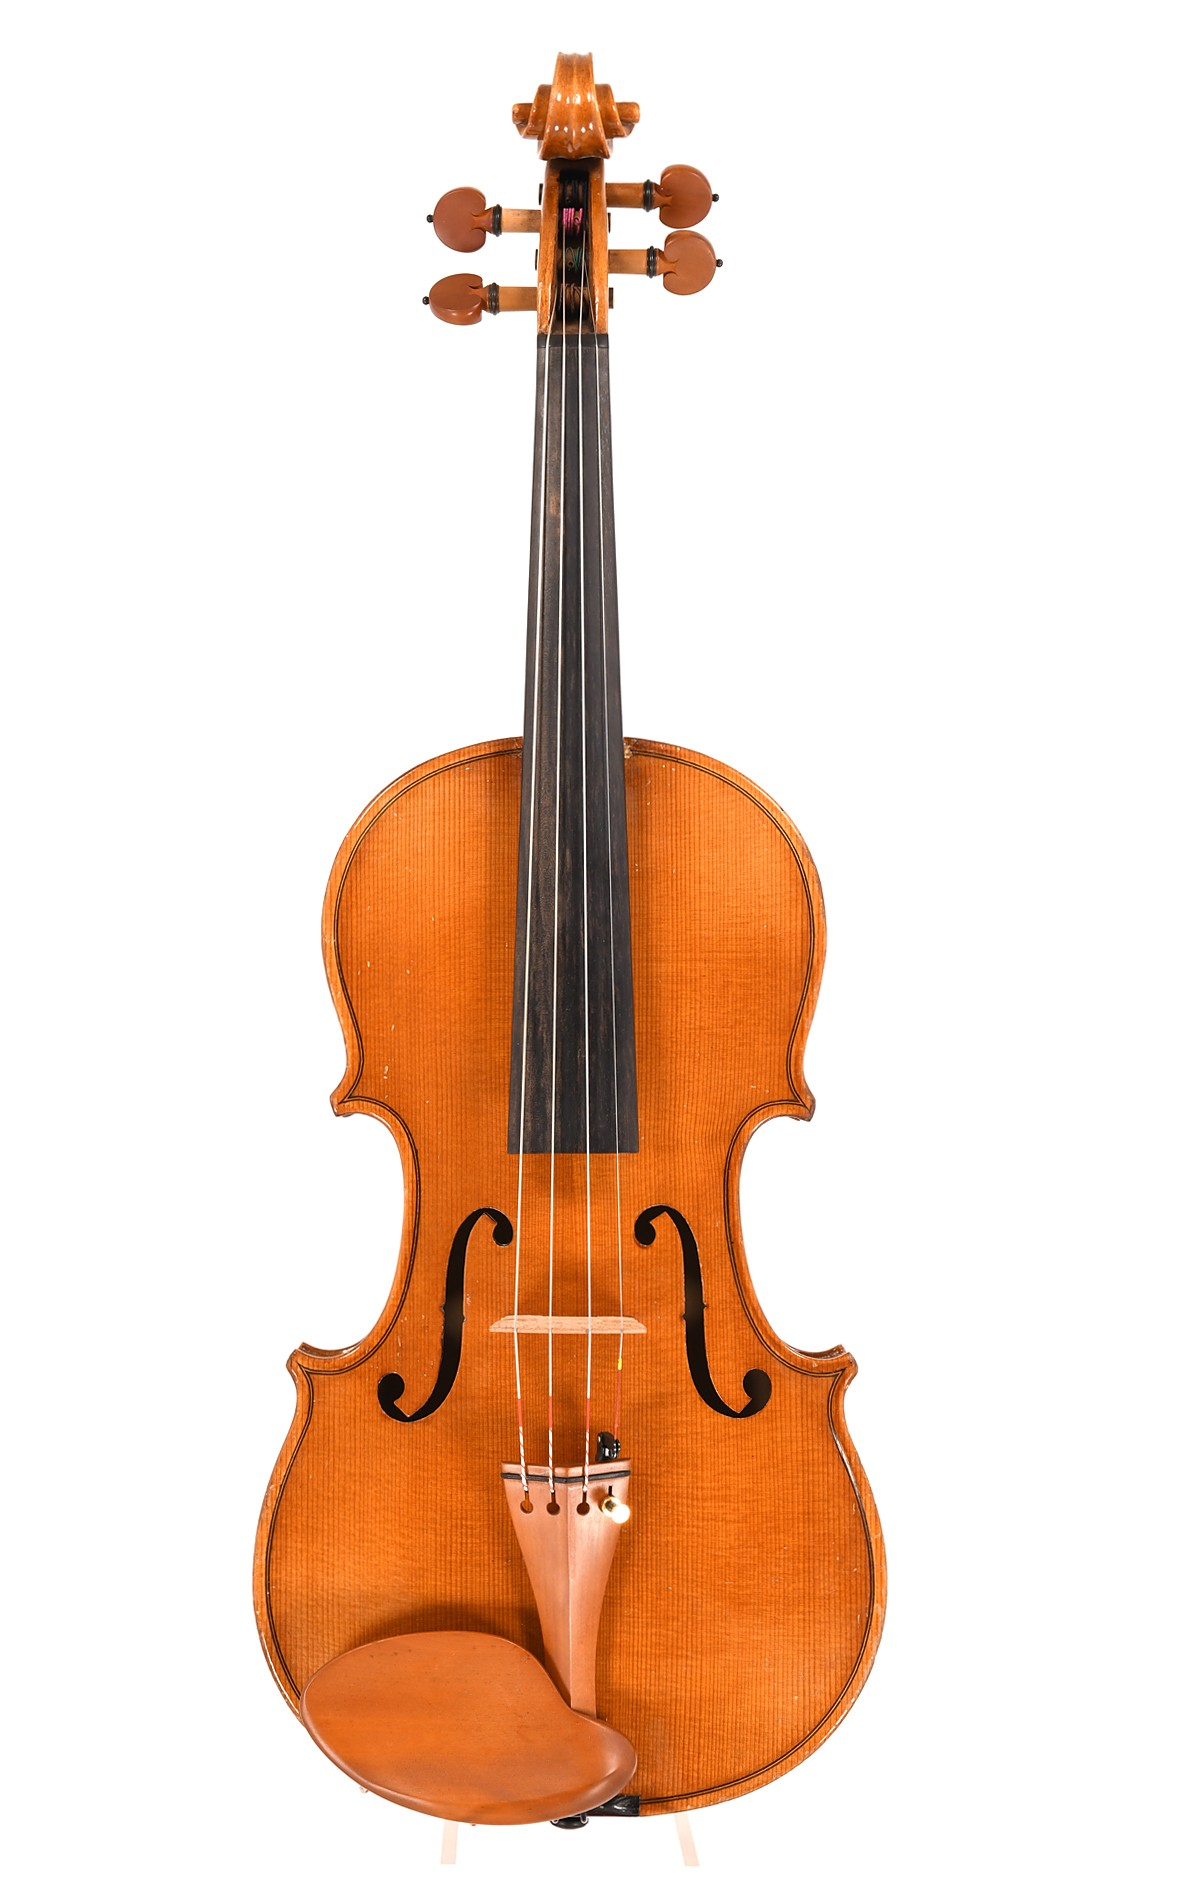 Older German violin - two piece top of widely grained spruce